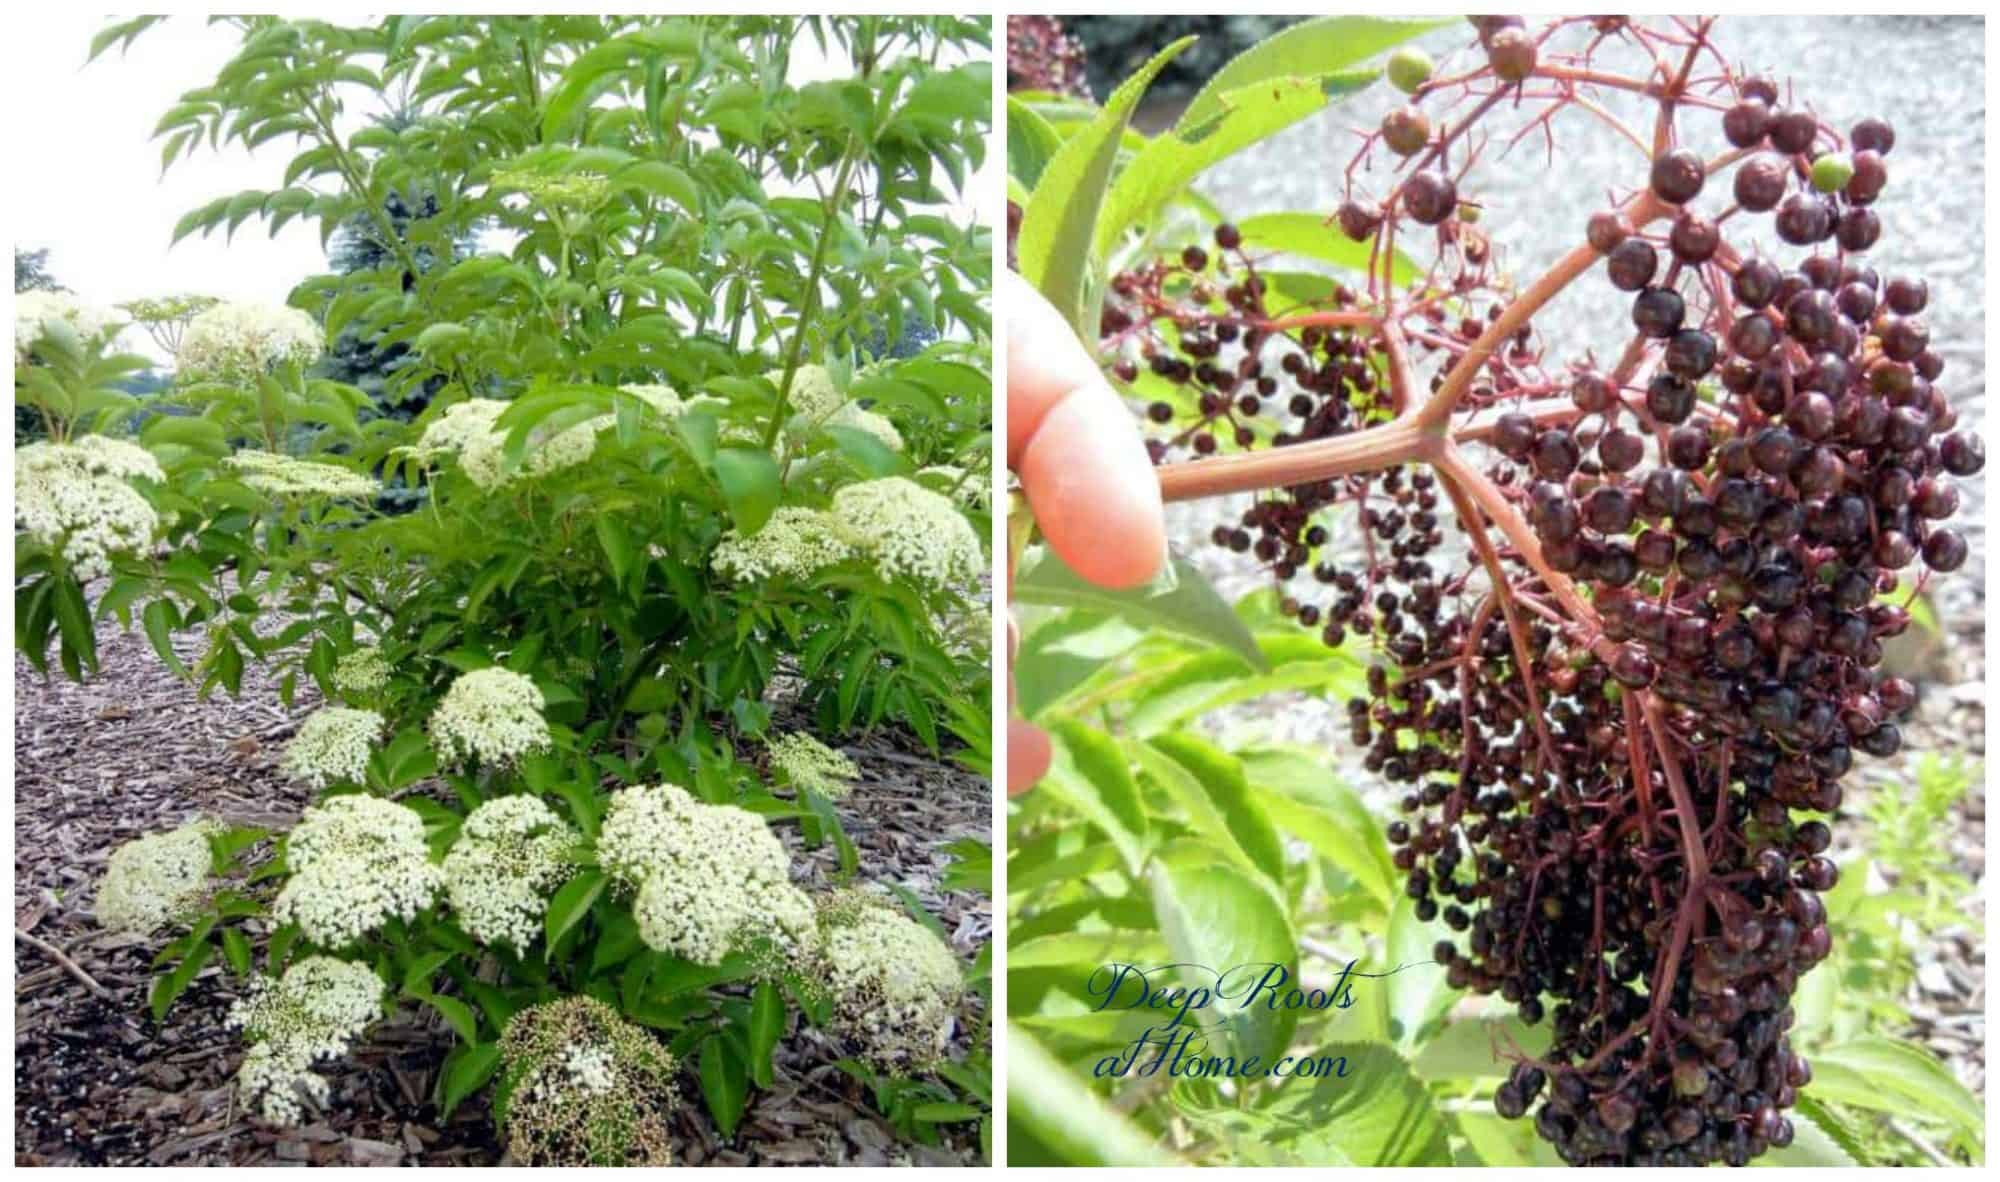 Elderberries ready to harvest, Johns variety, not self-fertile